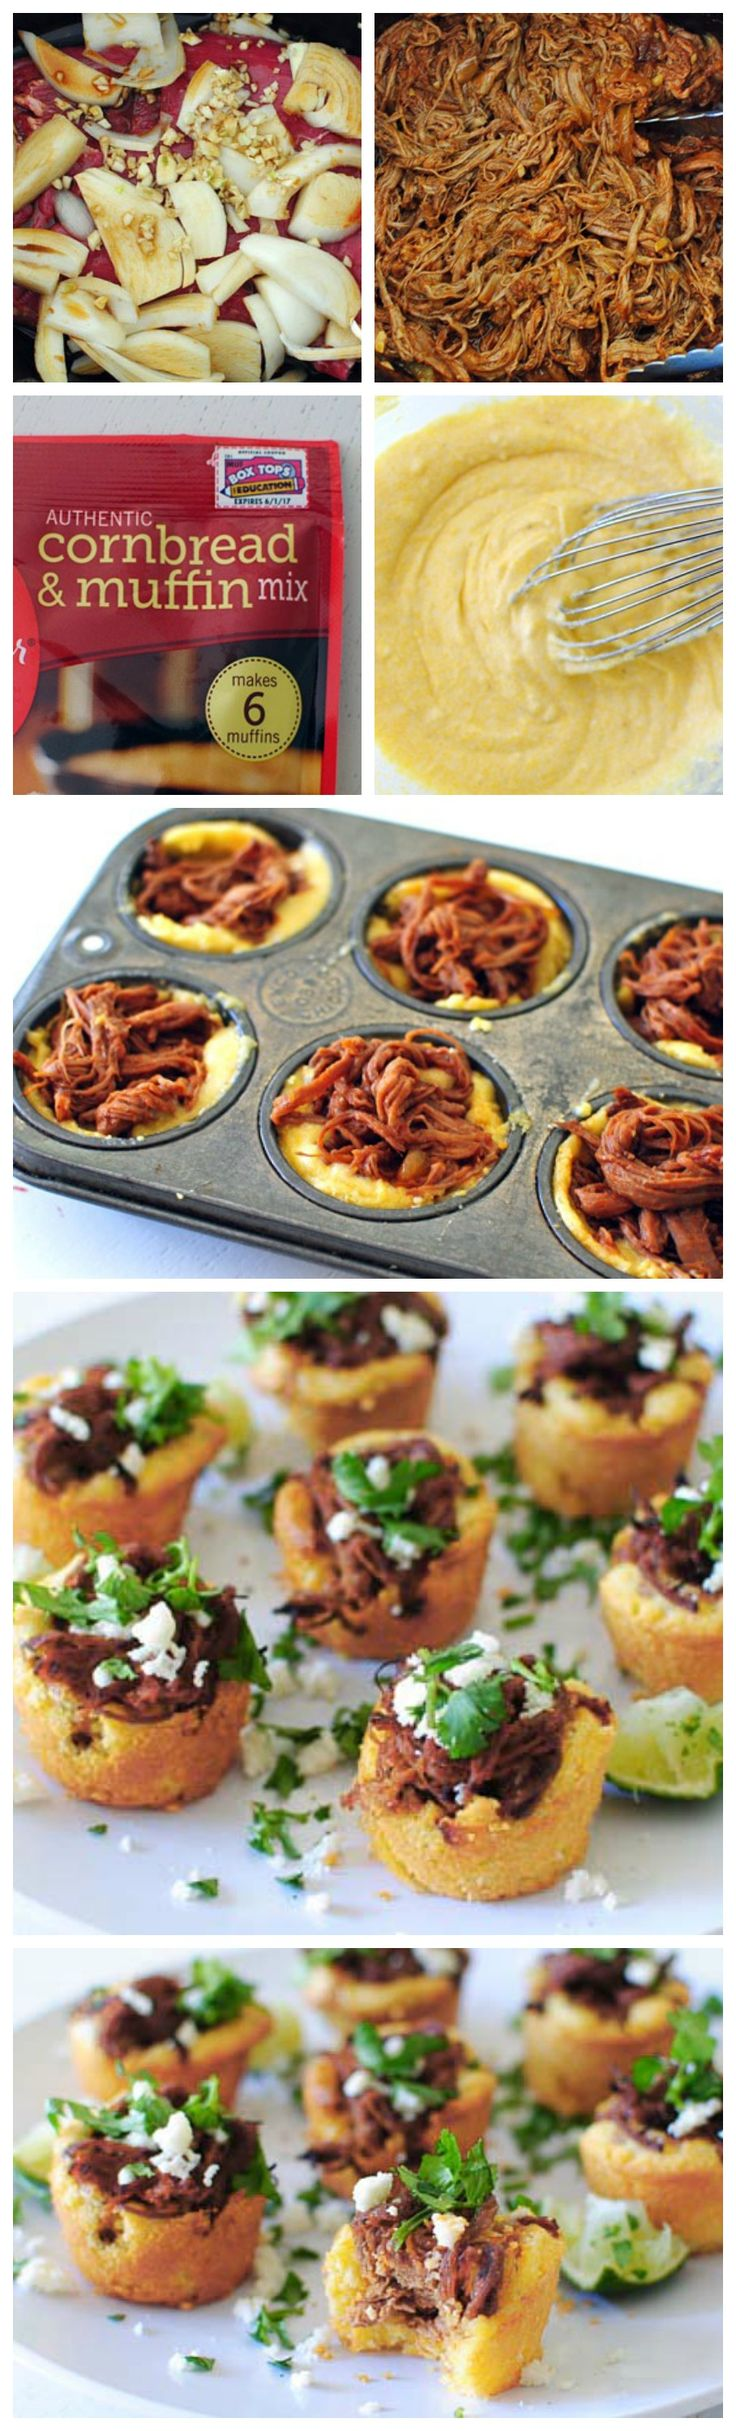 Steak & Cornbread Tamale Bites #CincoDeMayo